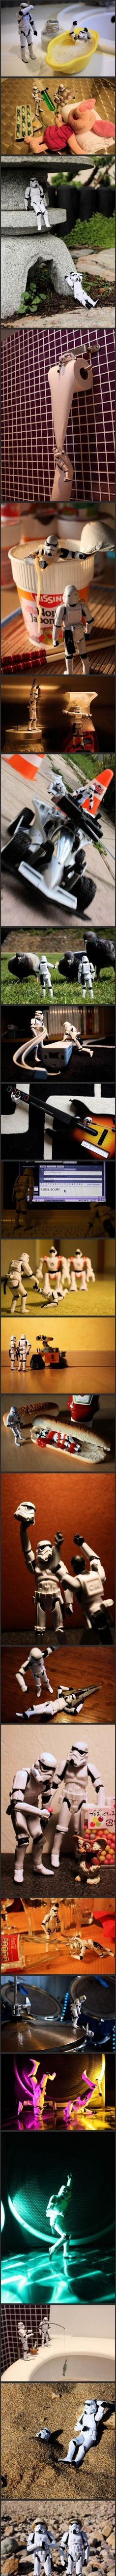 Storm troopers - A day in the life.